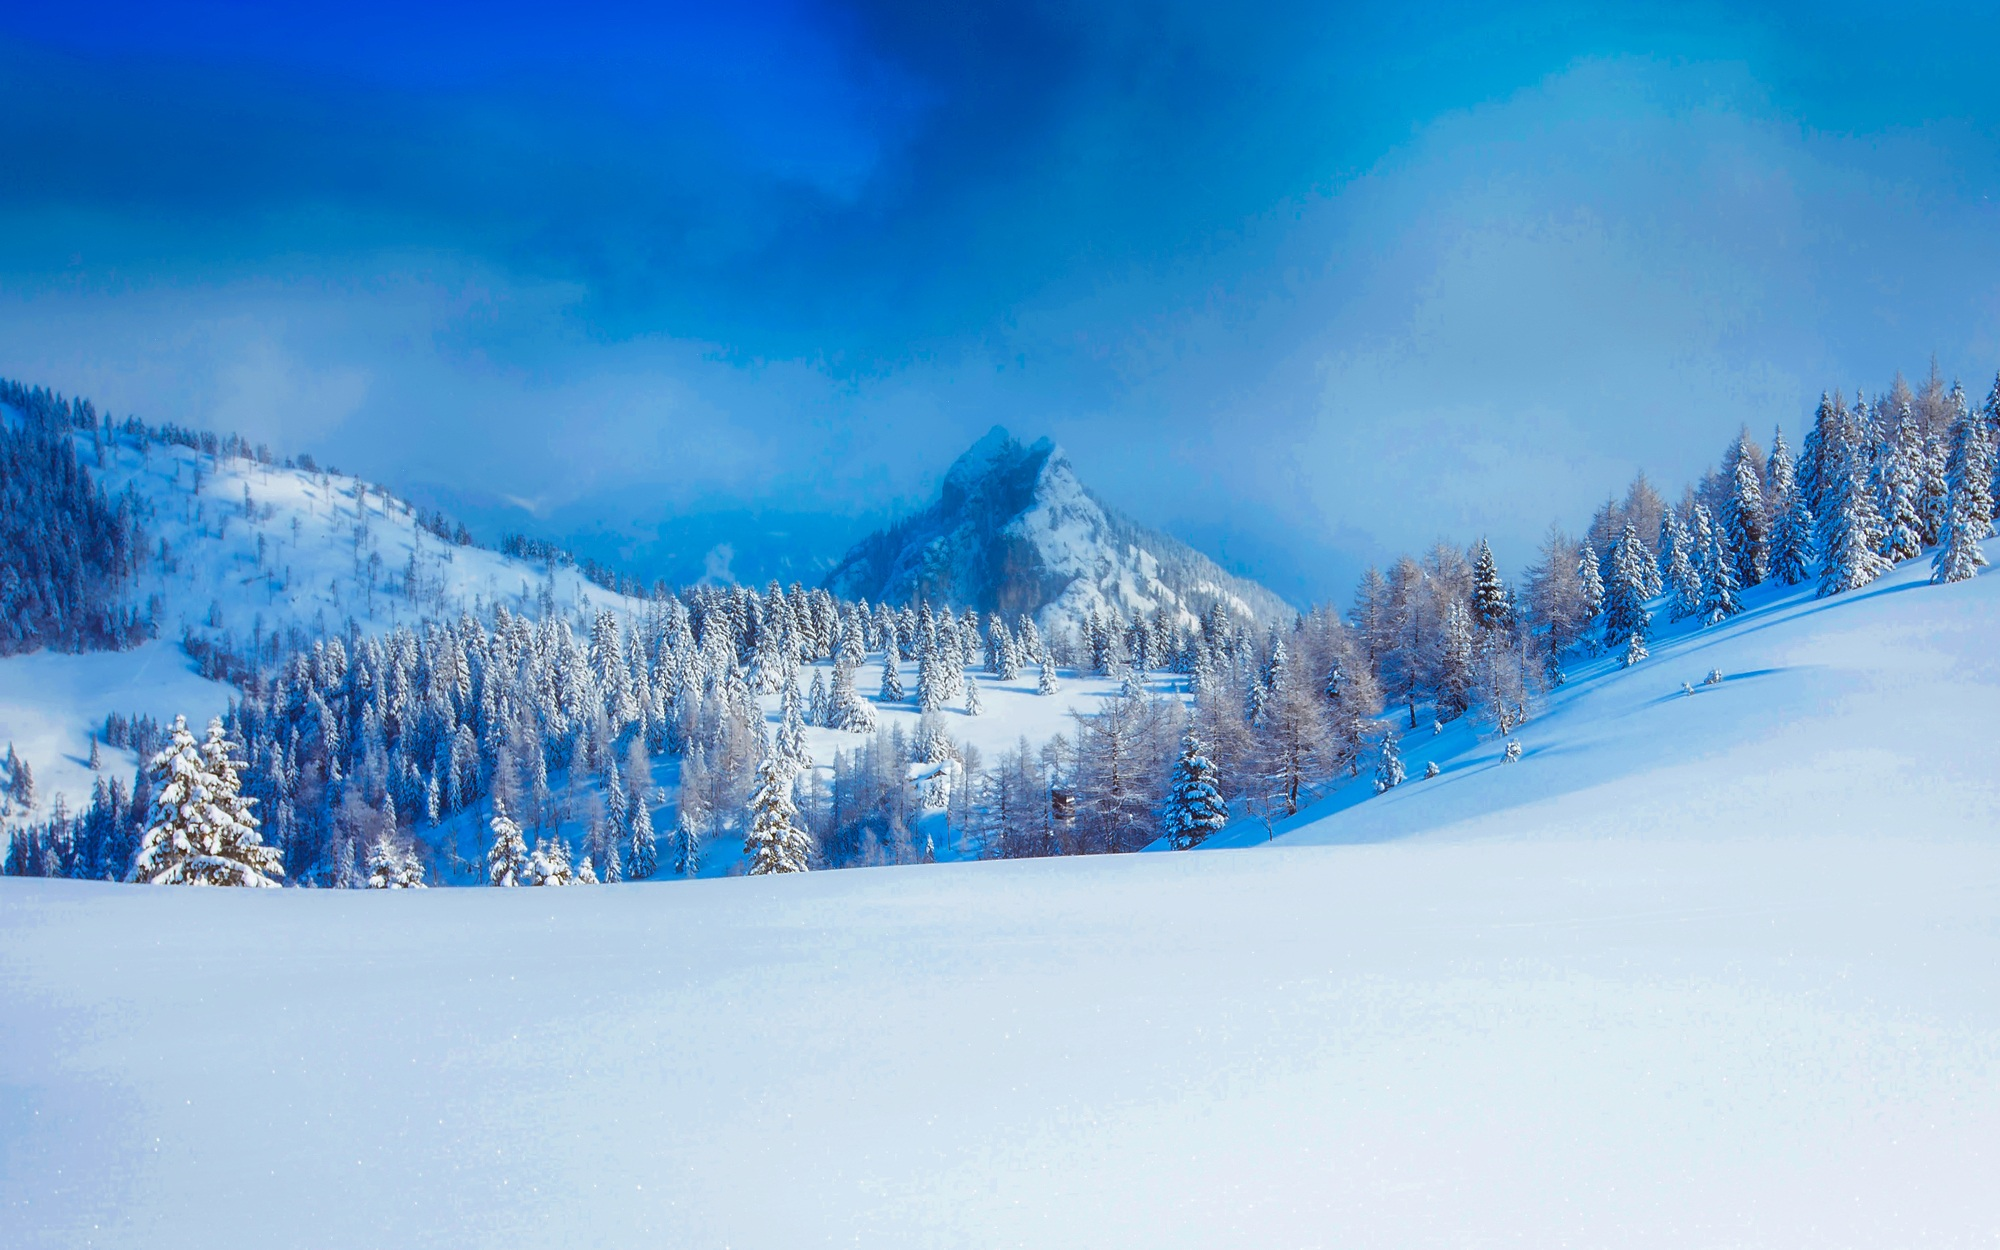 panoramic view of trees on snow covered landscape 183 free